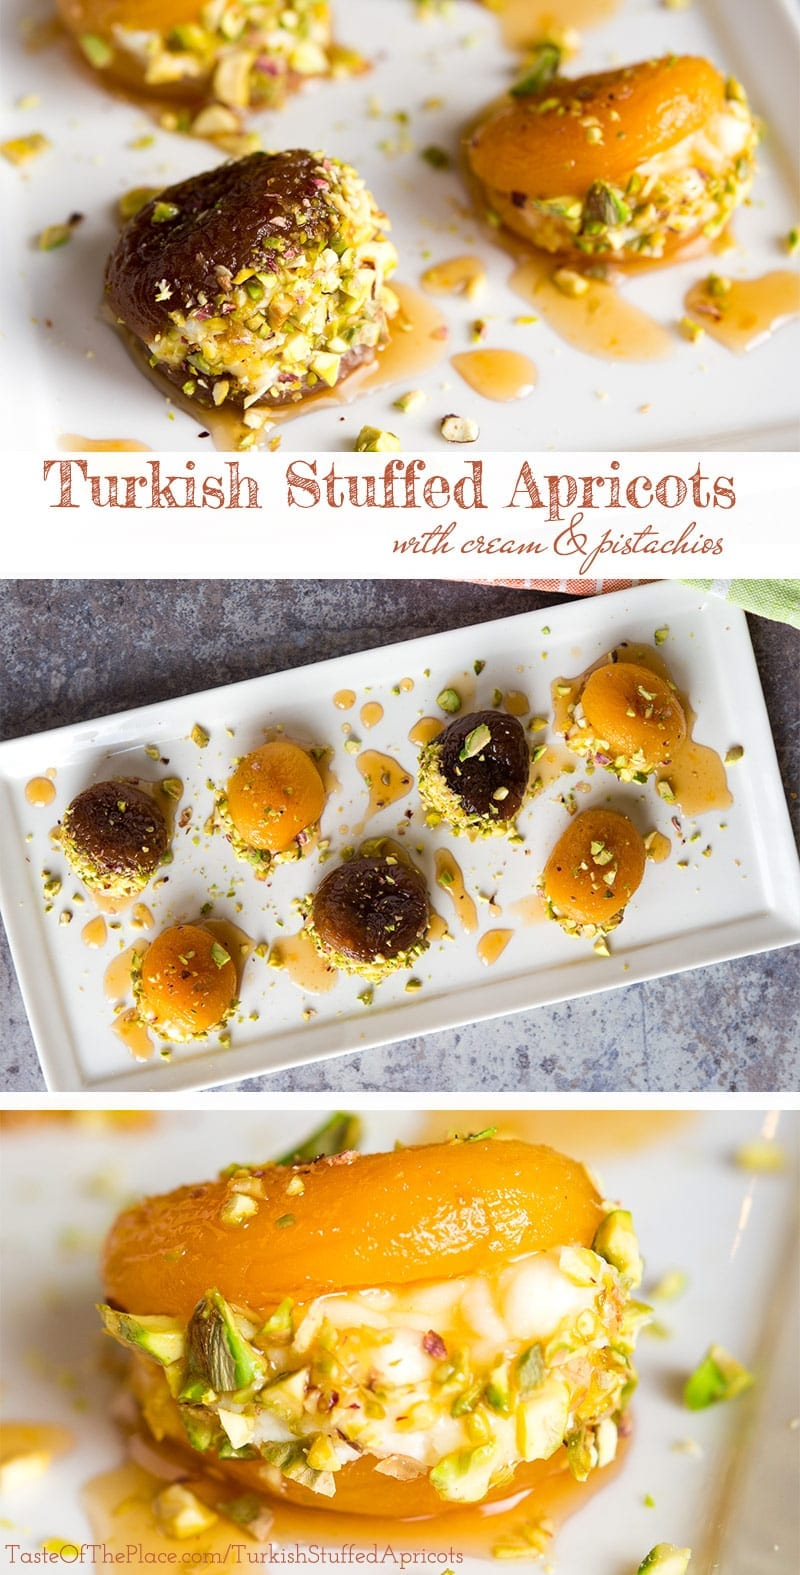 Turkish Stuffed Apricots recipe! Beautiful dried apricots are soaked, candied with lemon scented syrup, stuffed with rich cream, and garnished with crunchy pistachios to make the perfect, lightly sweet one bite treat! Serve them after dinner, as an appetizer, for afternoon tea, or even for breakfast.